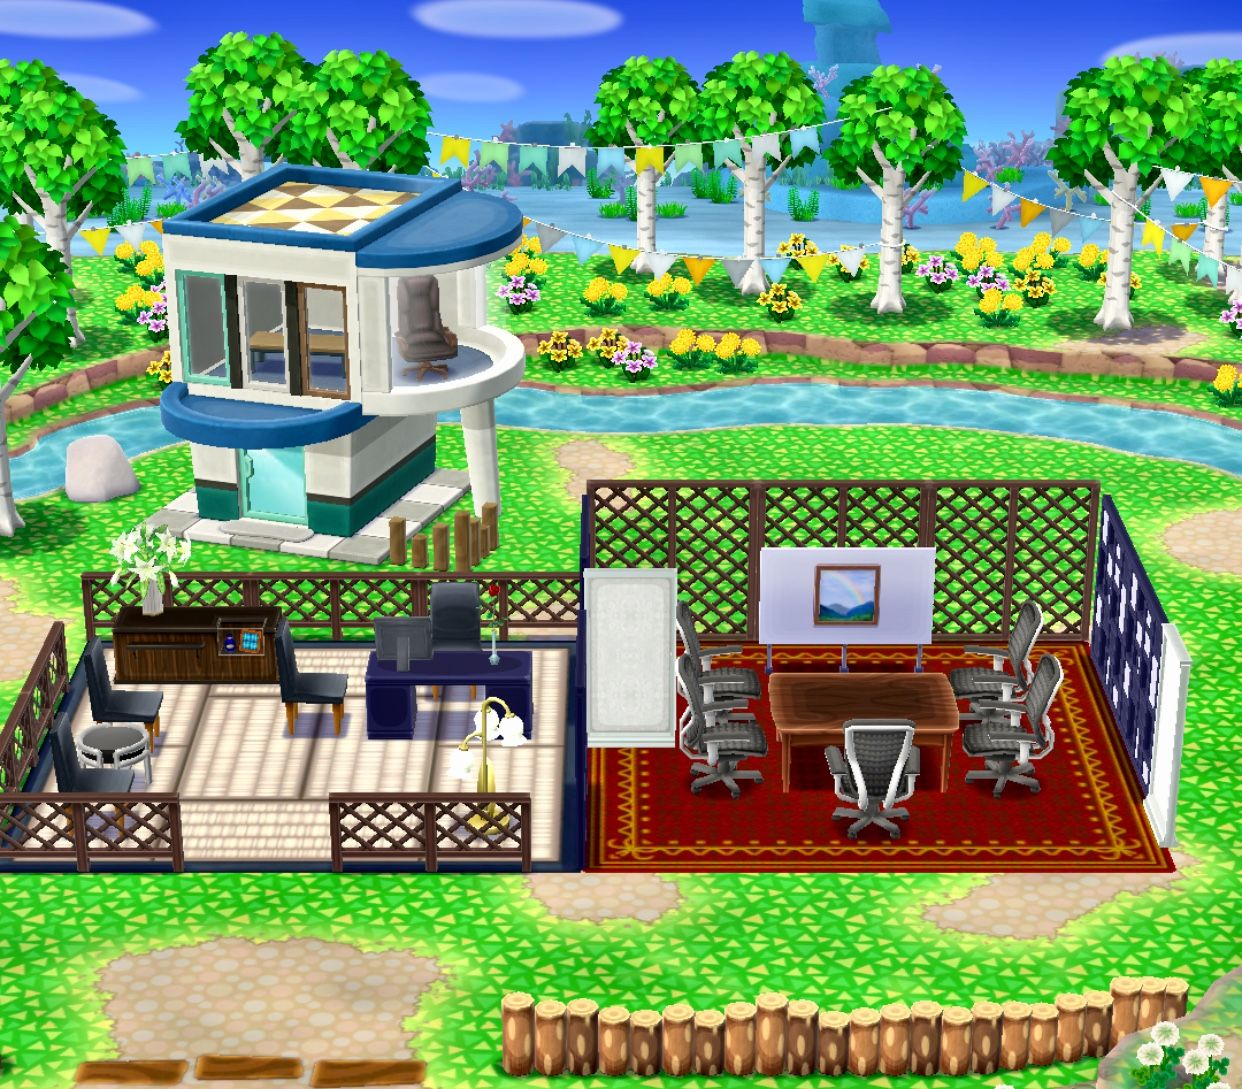 Pin By 💖𝓐𝓷𝓰𝓮𝓵𝓸𝓿𝓮 💖 On Animal Crossing